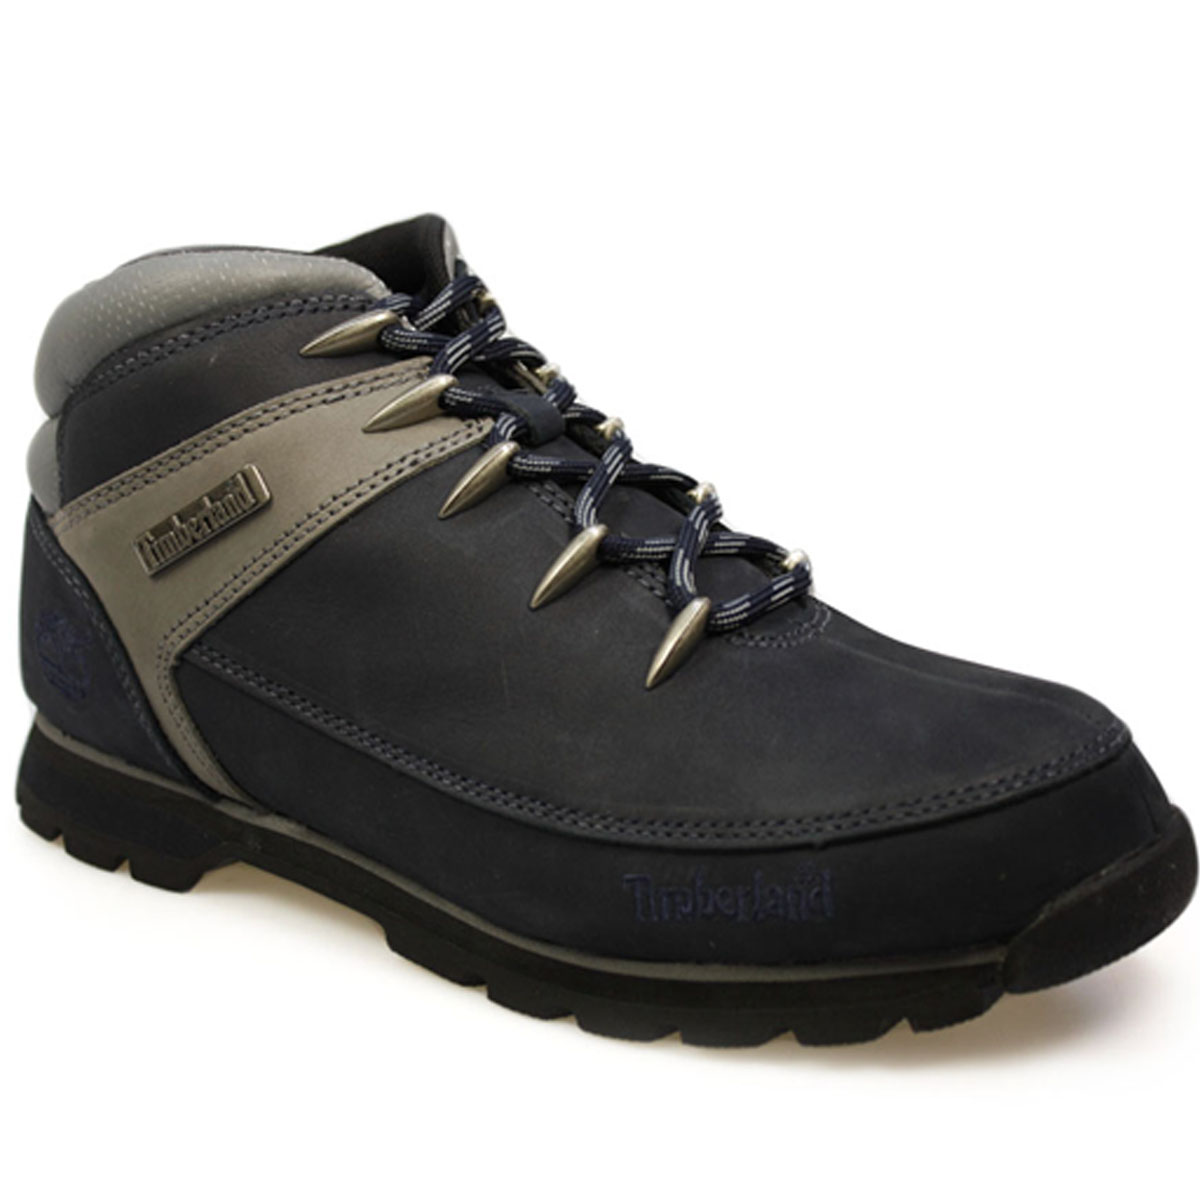 Unique Timberland Timberland Euro Brook Mens Hiker Boots Navy In Blue For Men (navy) | Lyst